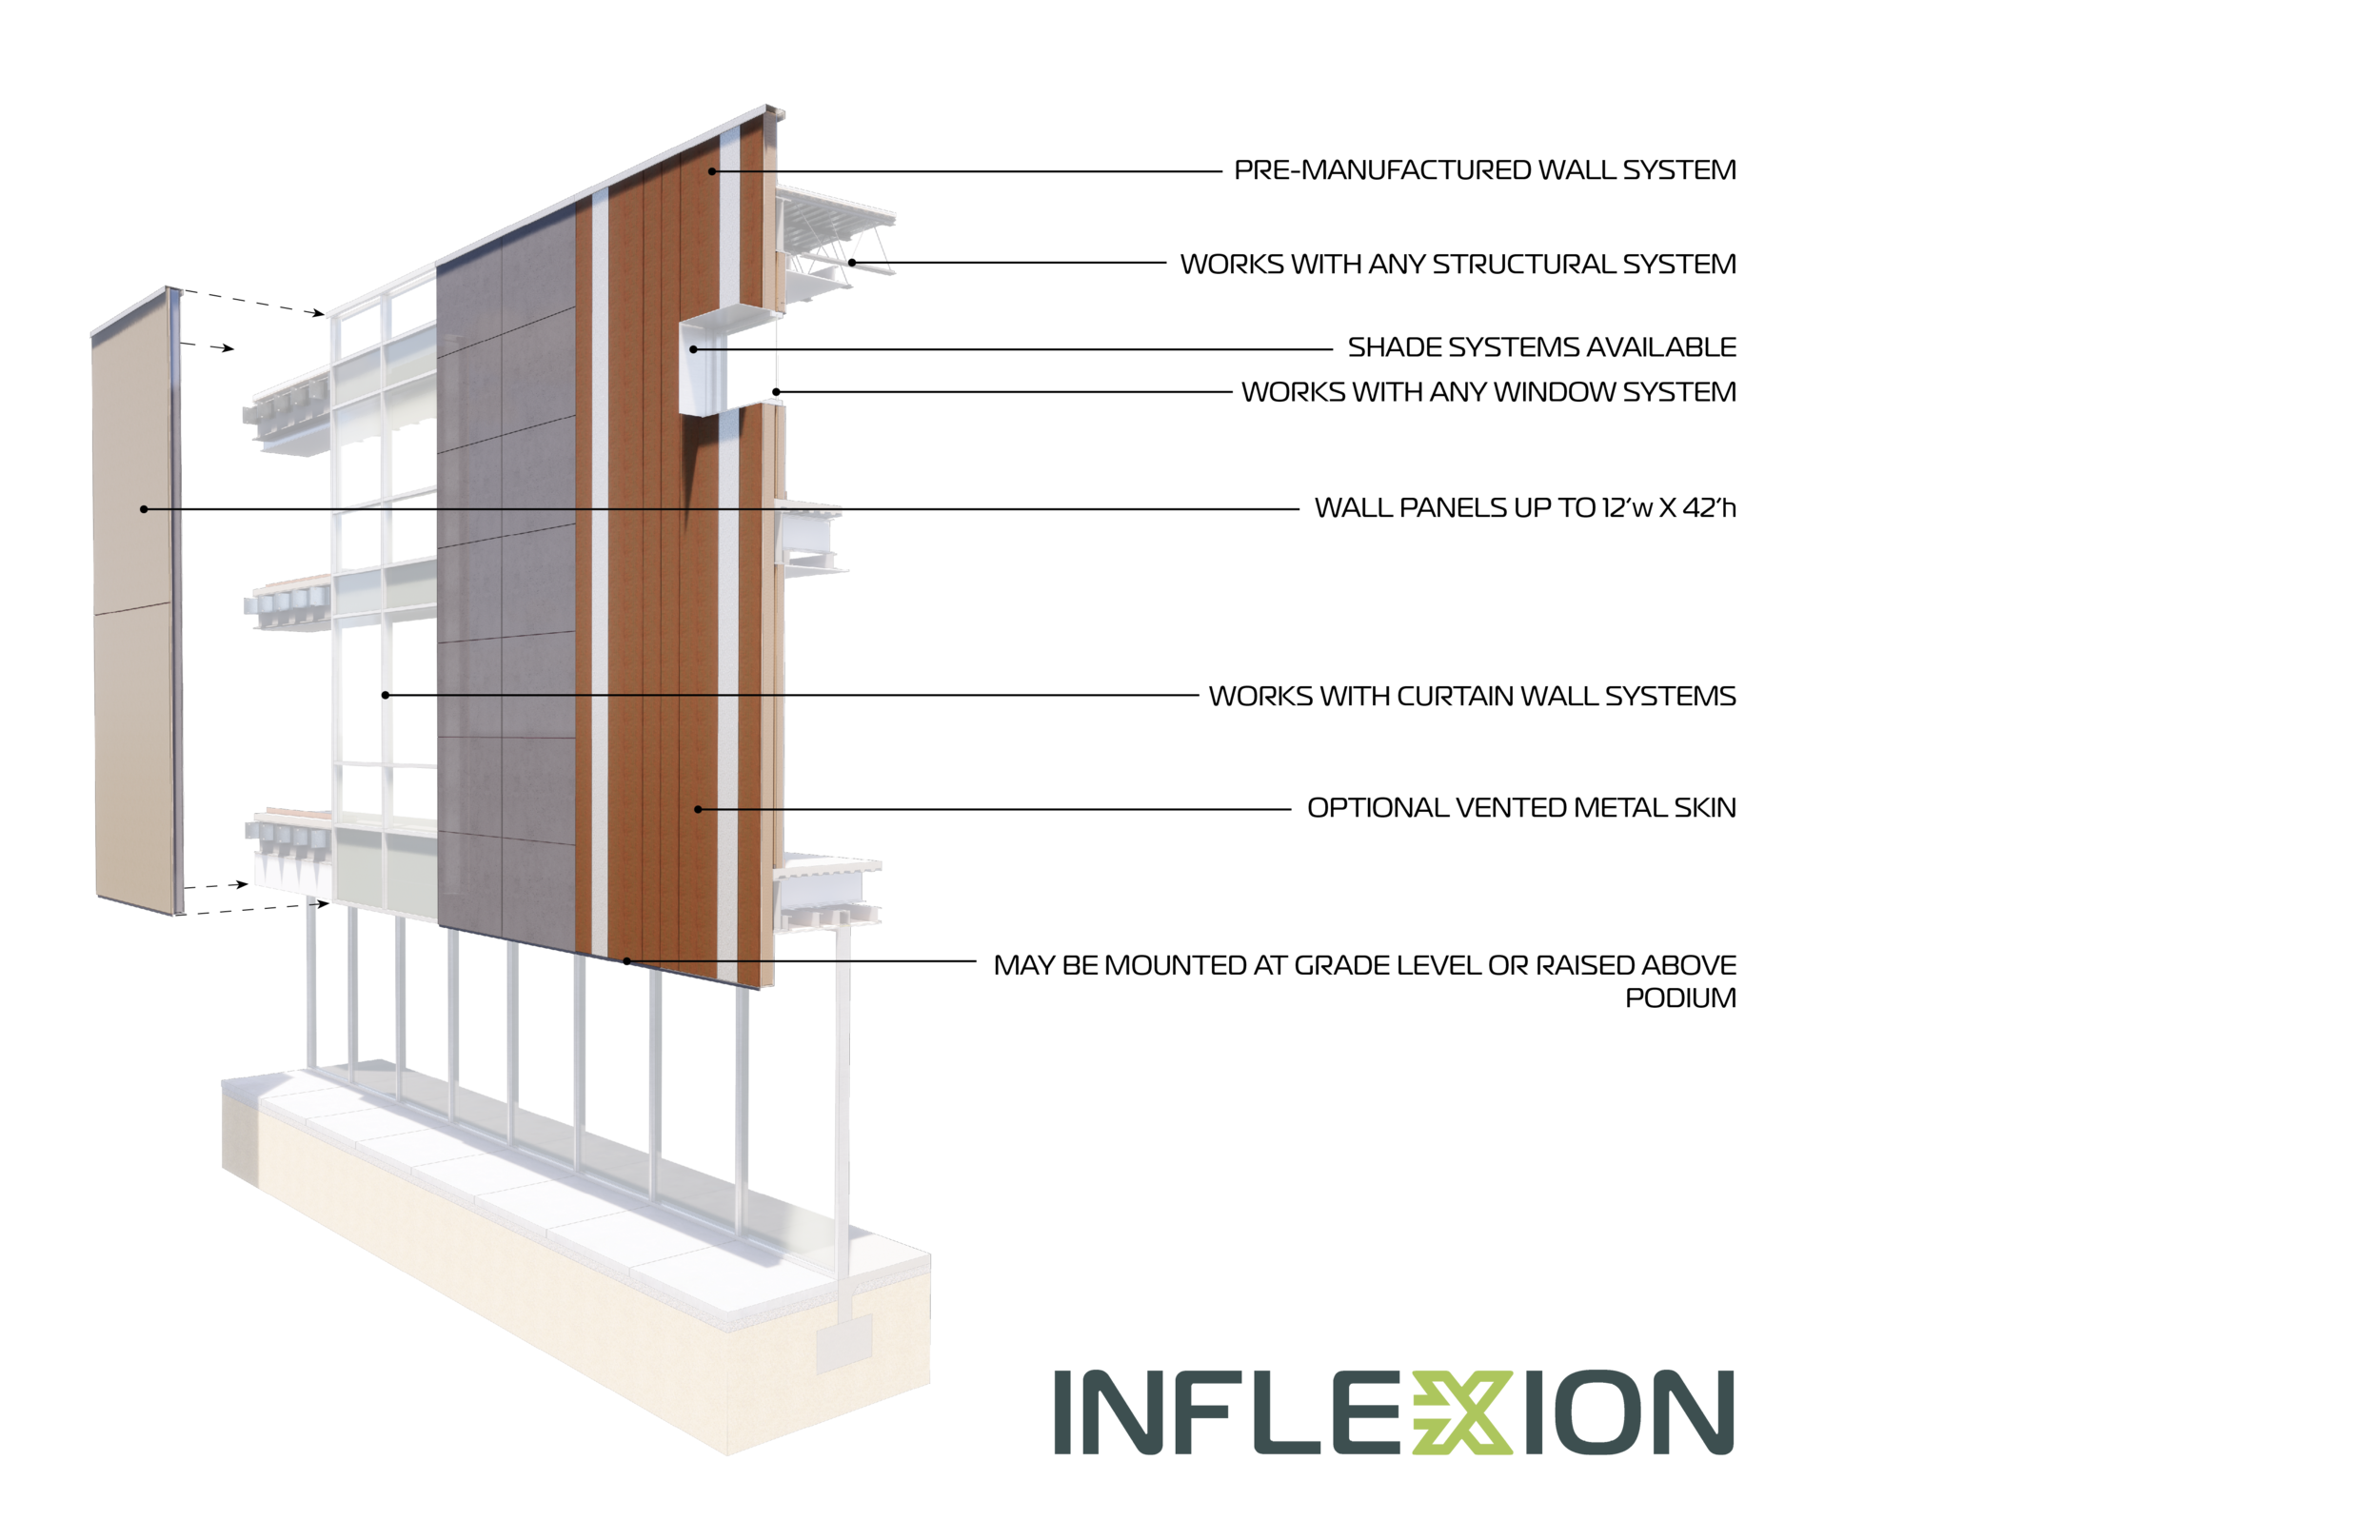 INFLEXION+WALL+DIAGRAM+(180202).jpg